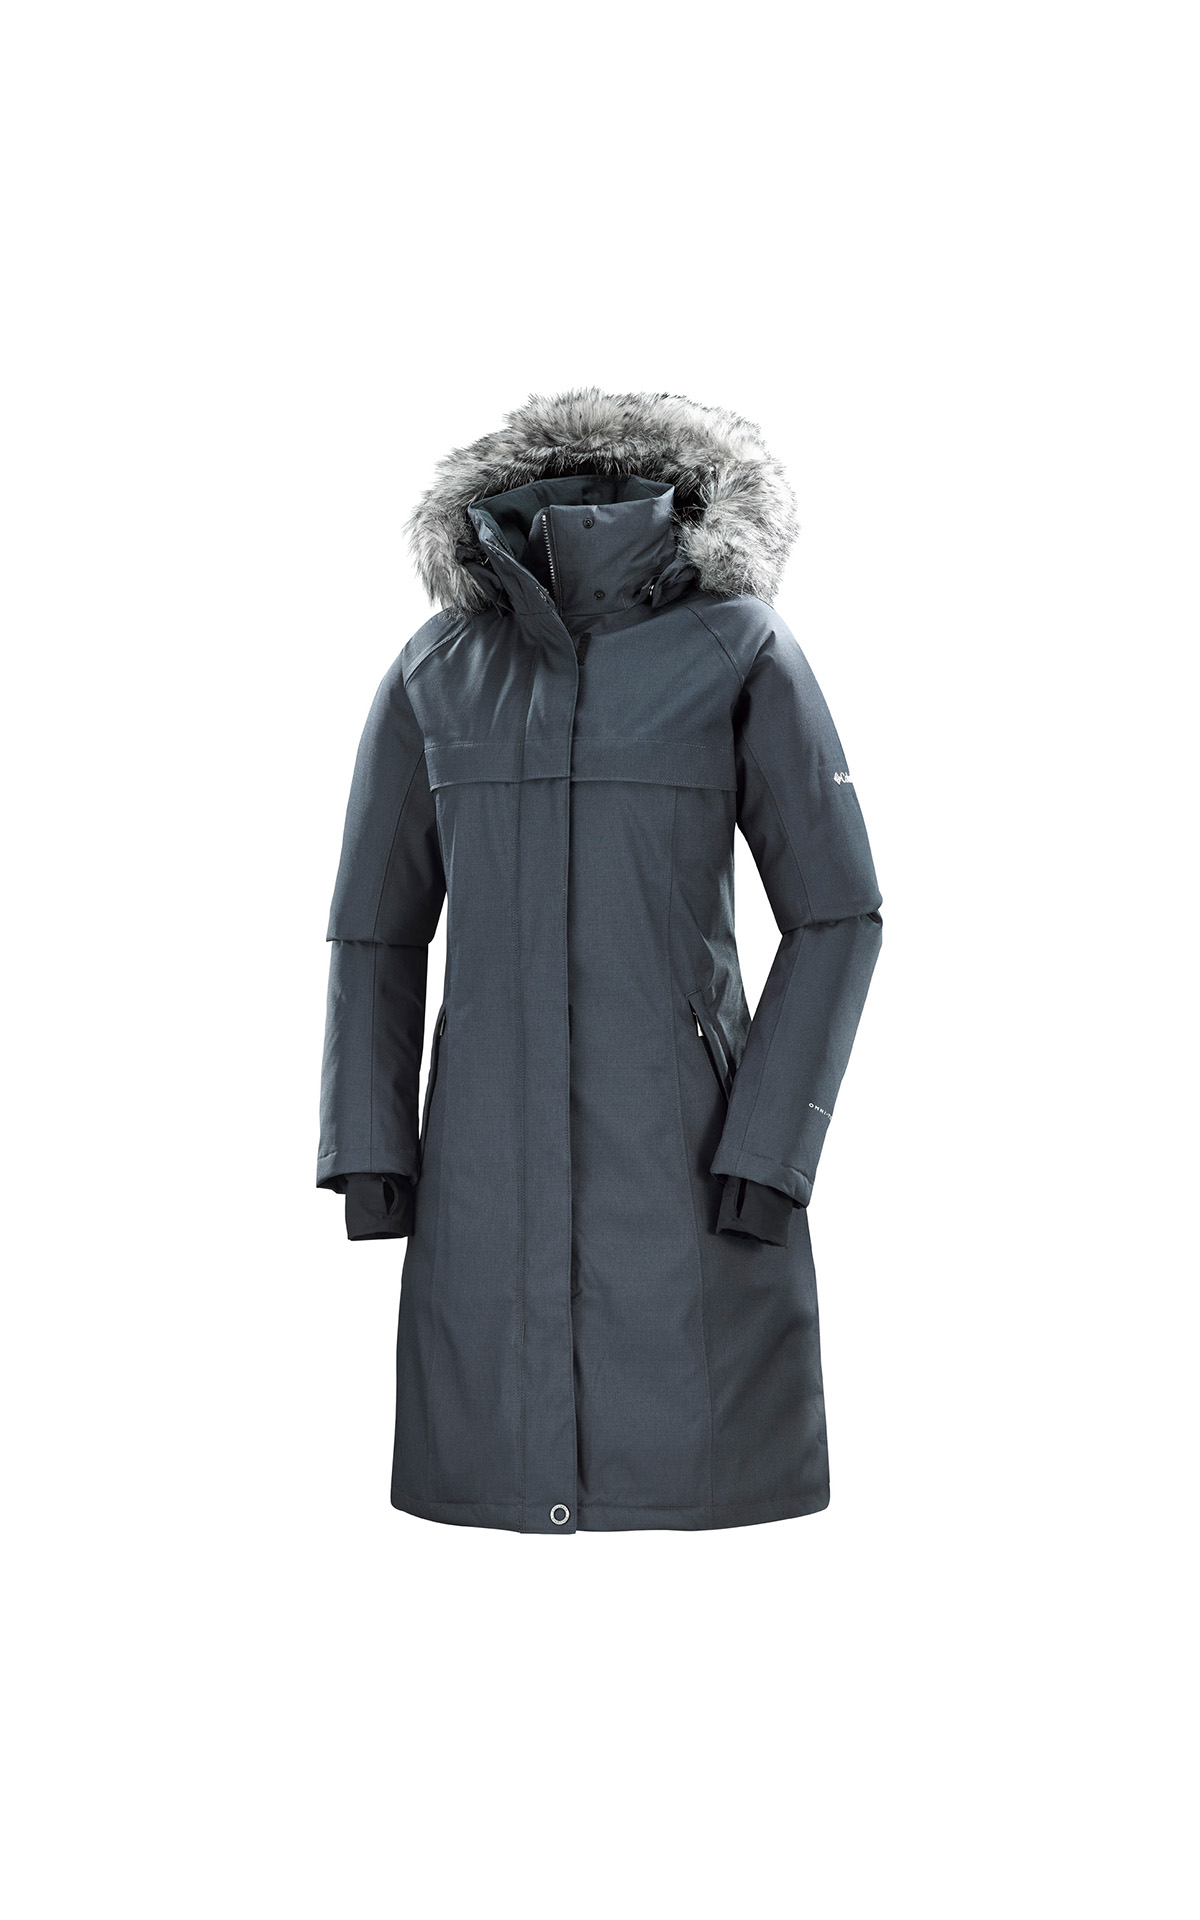 Grey coat Columbia